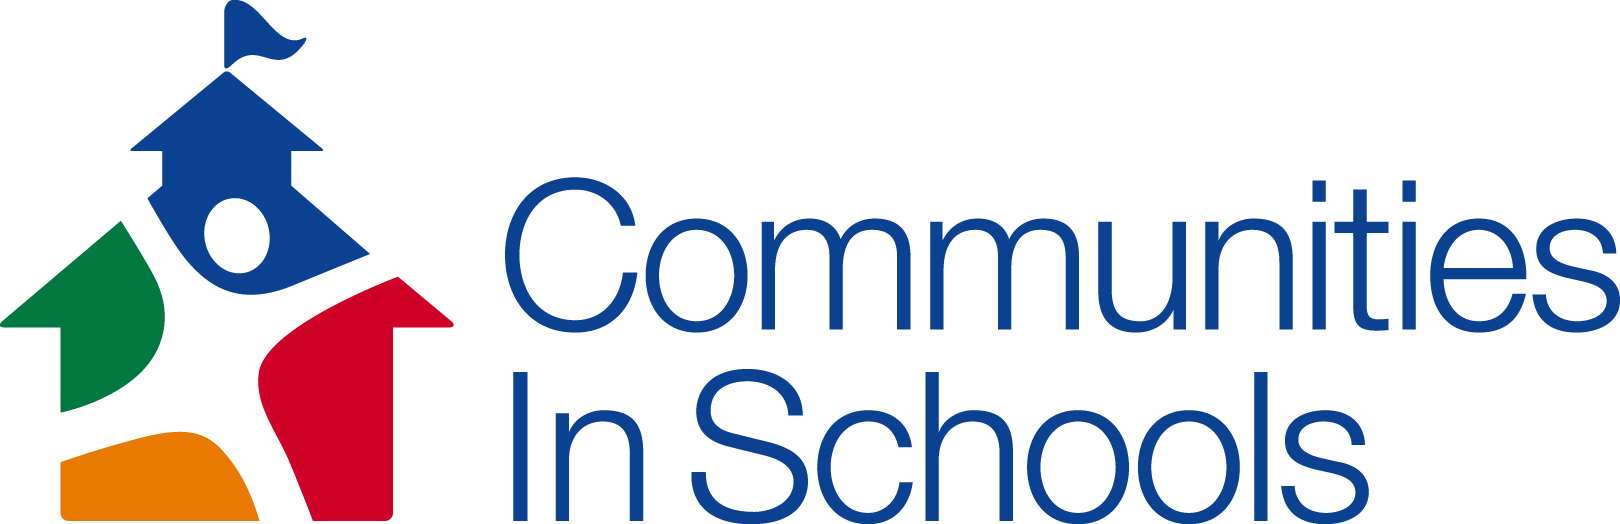 Communities in Schools